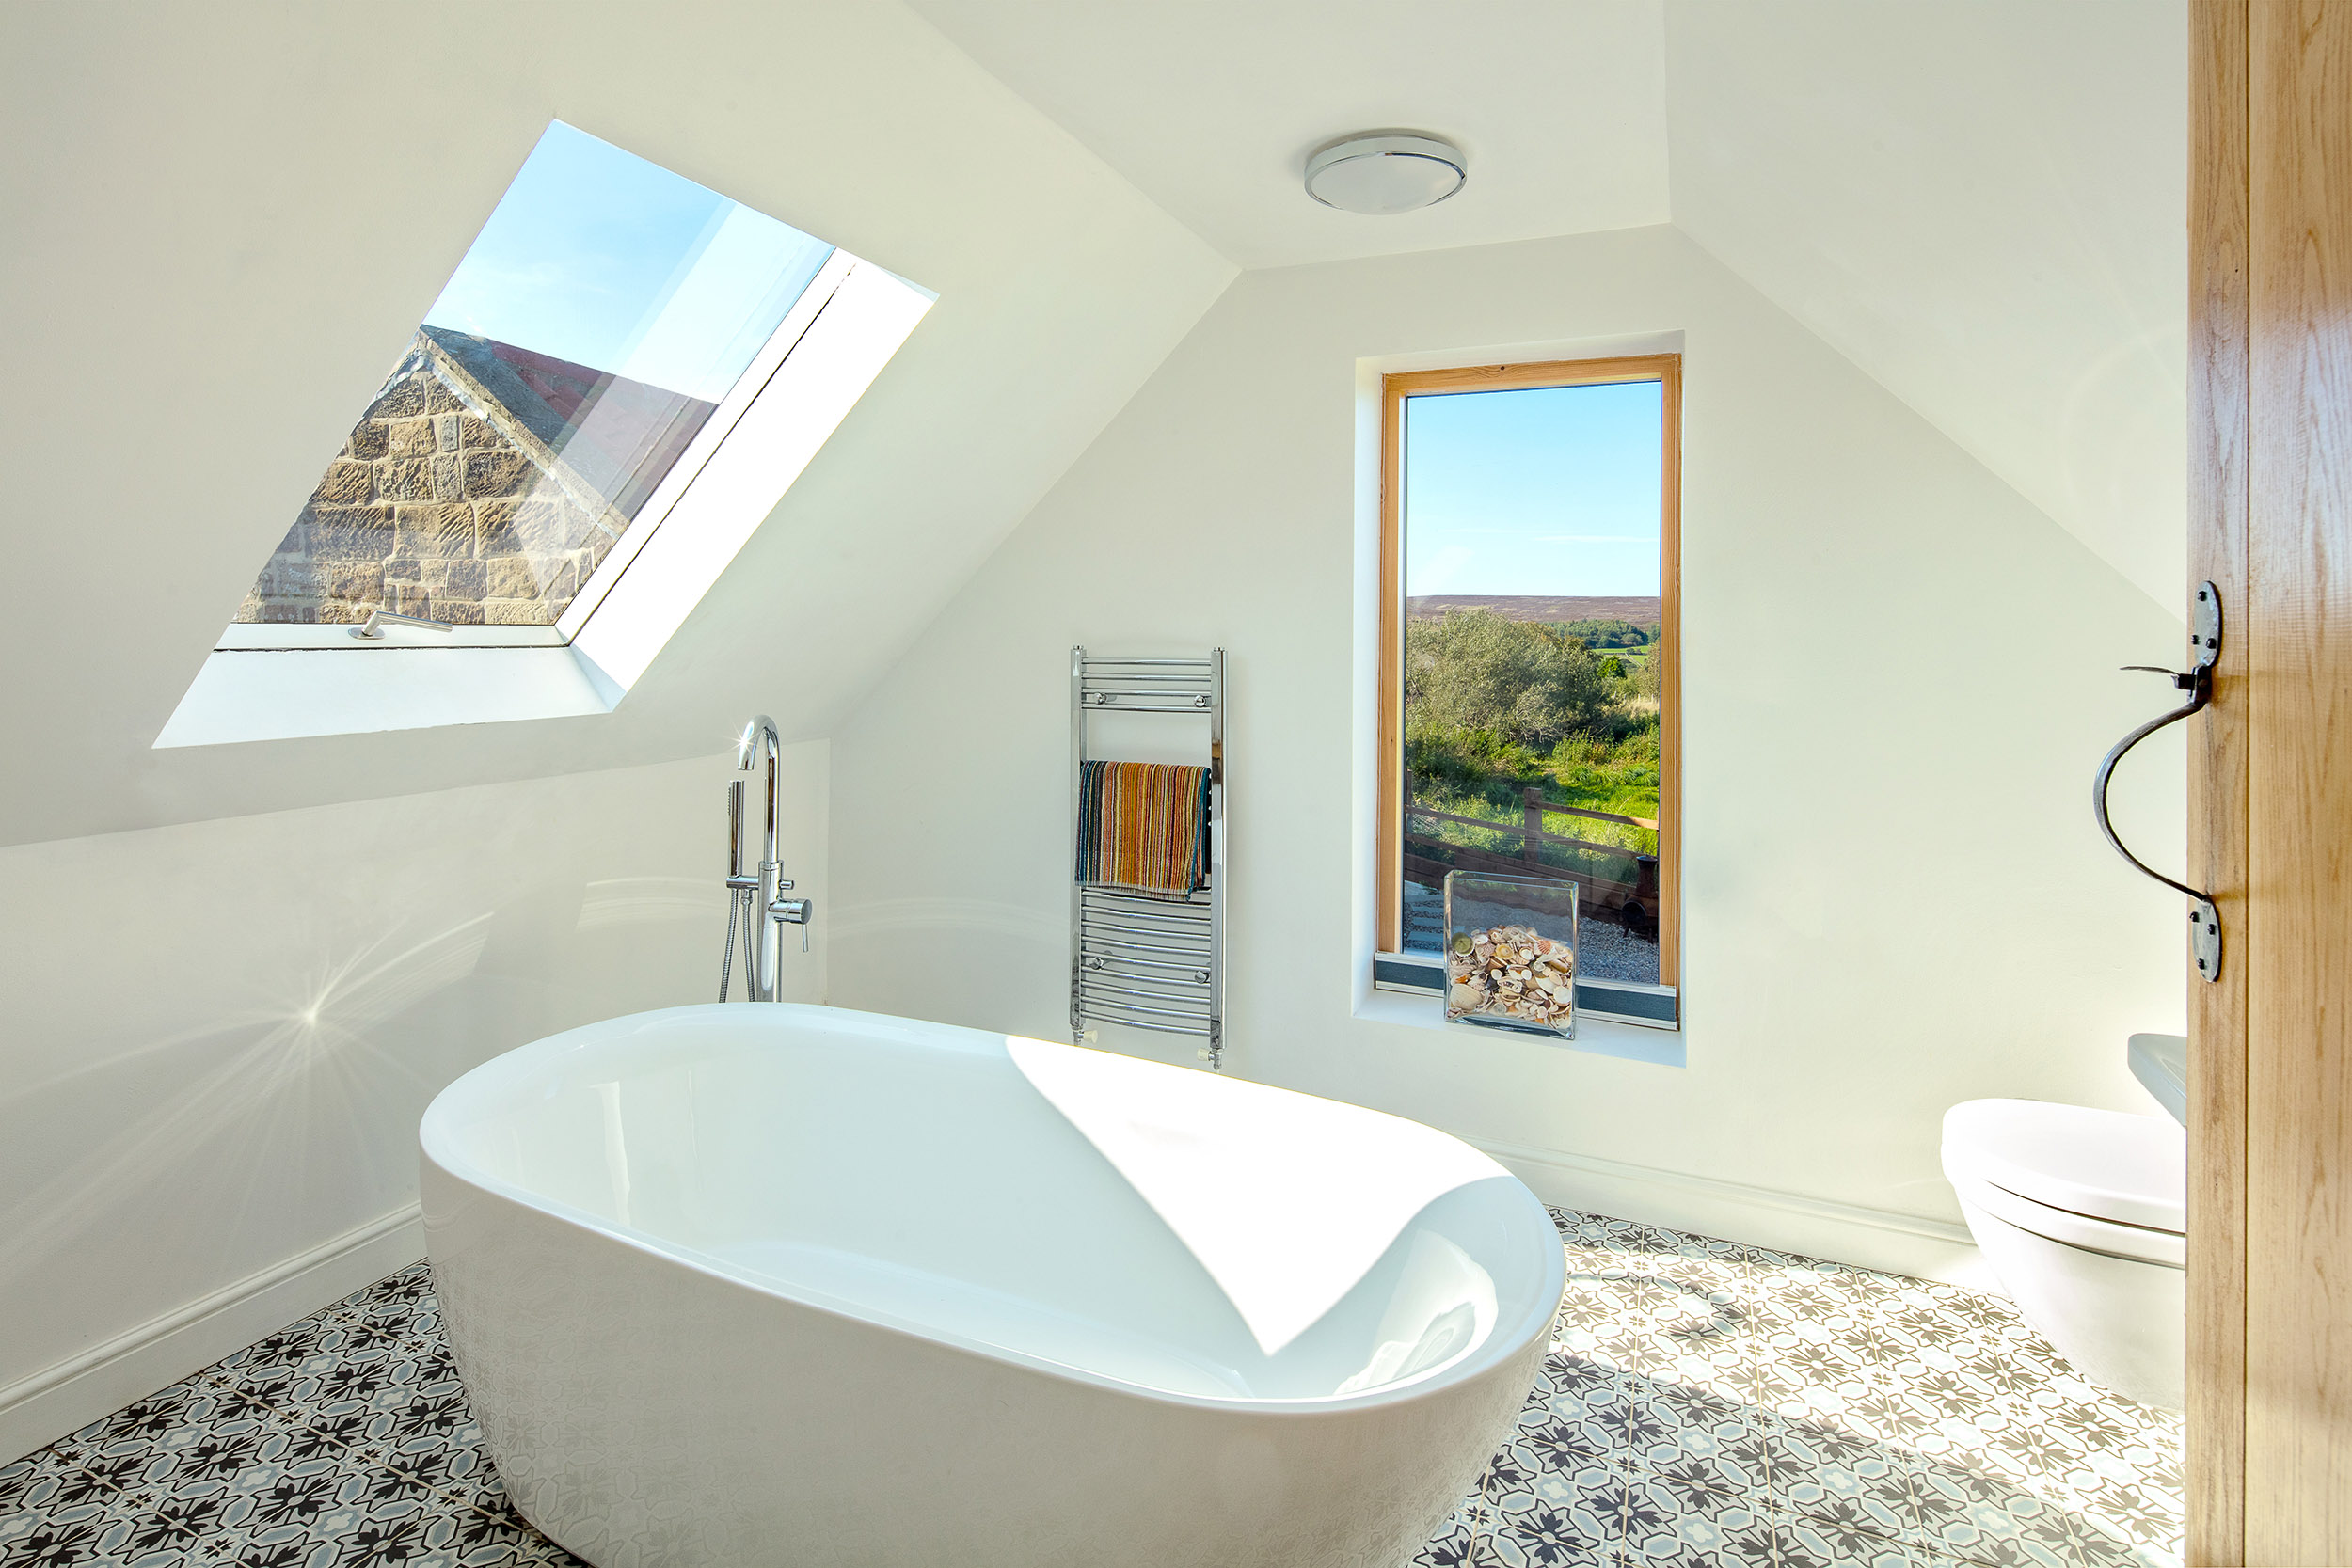 harper-perry-architects-housing-barn-westerdale-north-yorkshire-bathroom-rooflight